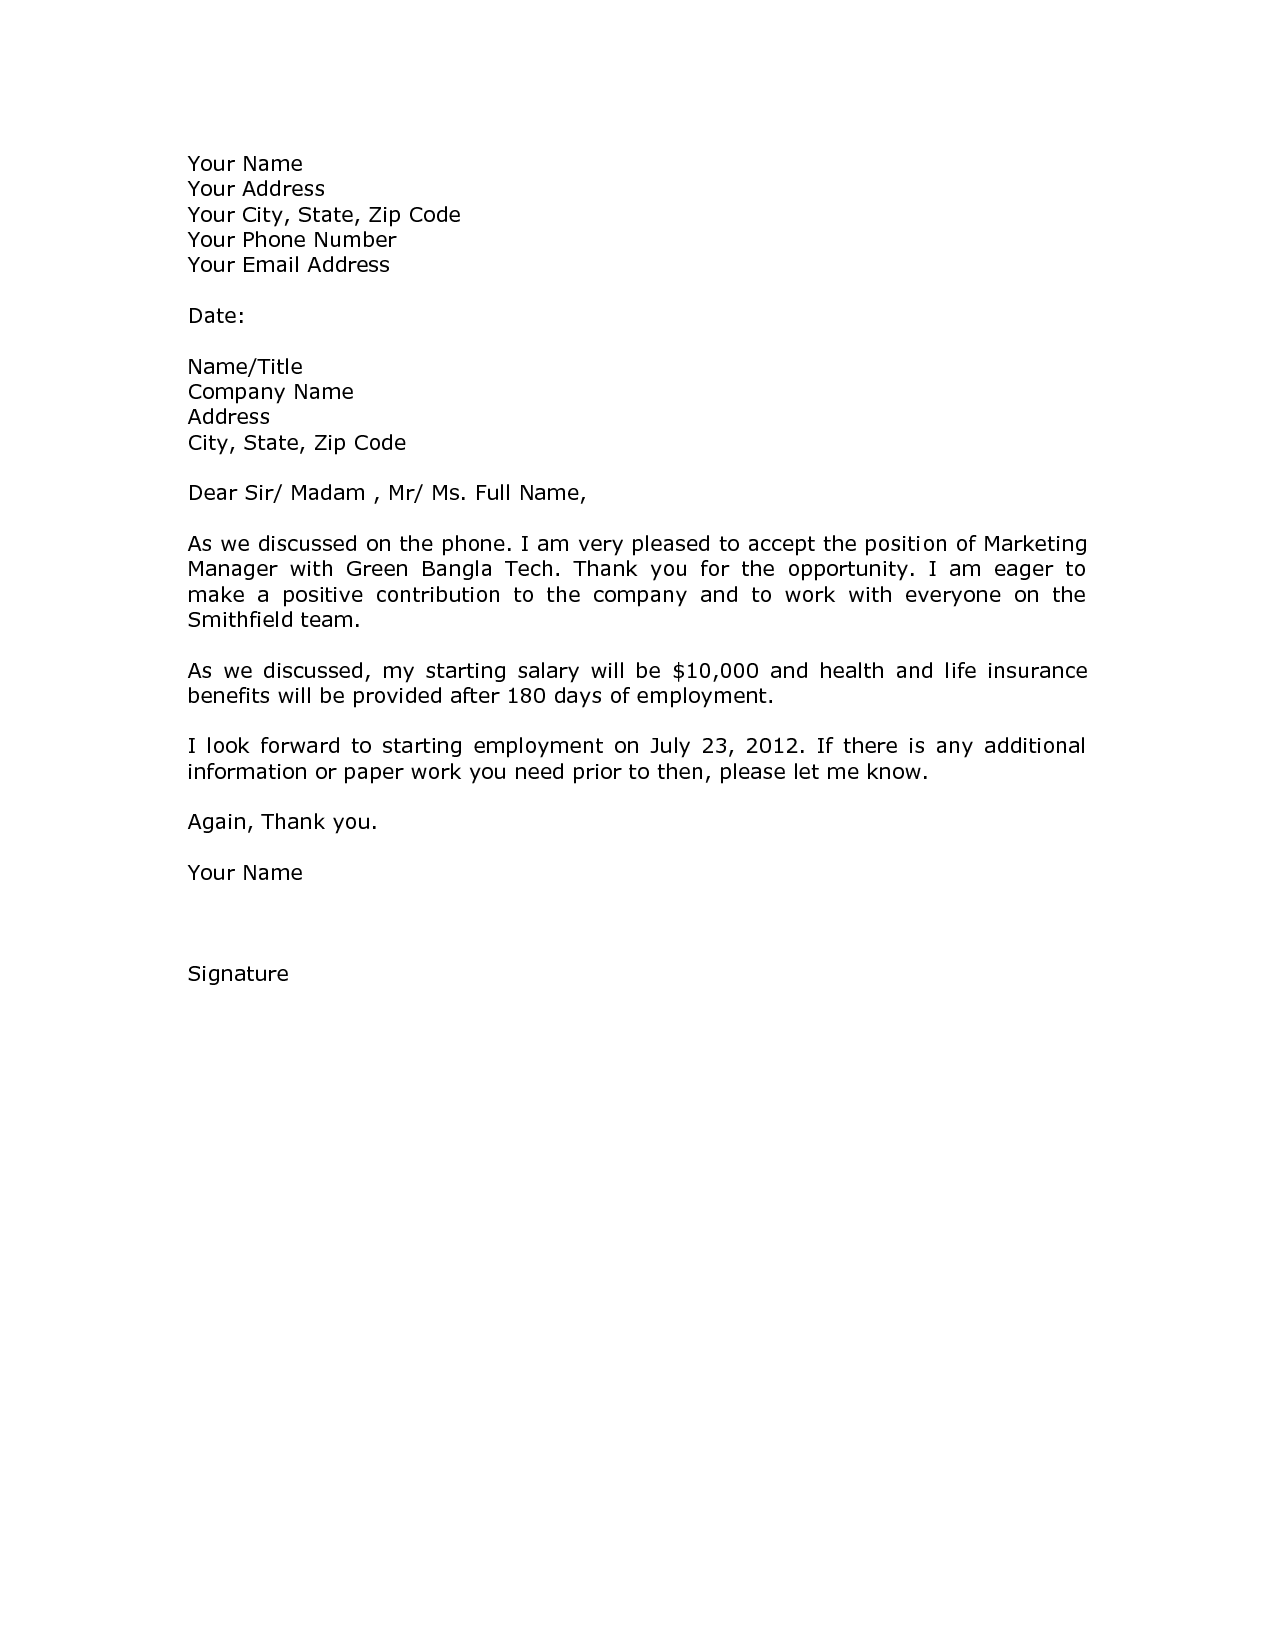 Offer Of Employment Letter Sample from i.pinimg.com